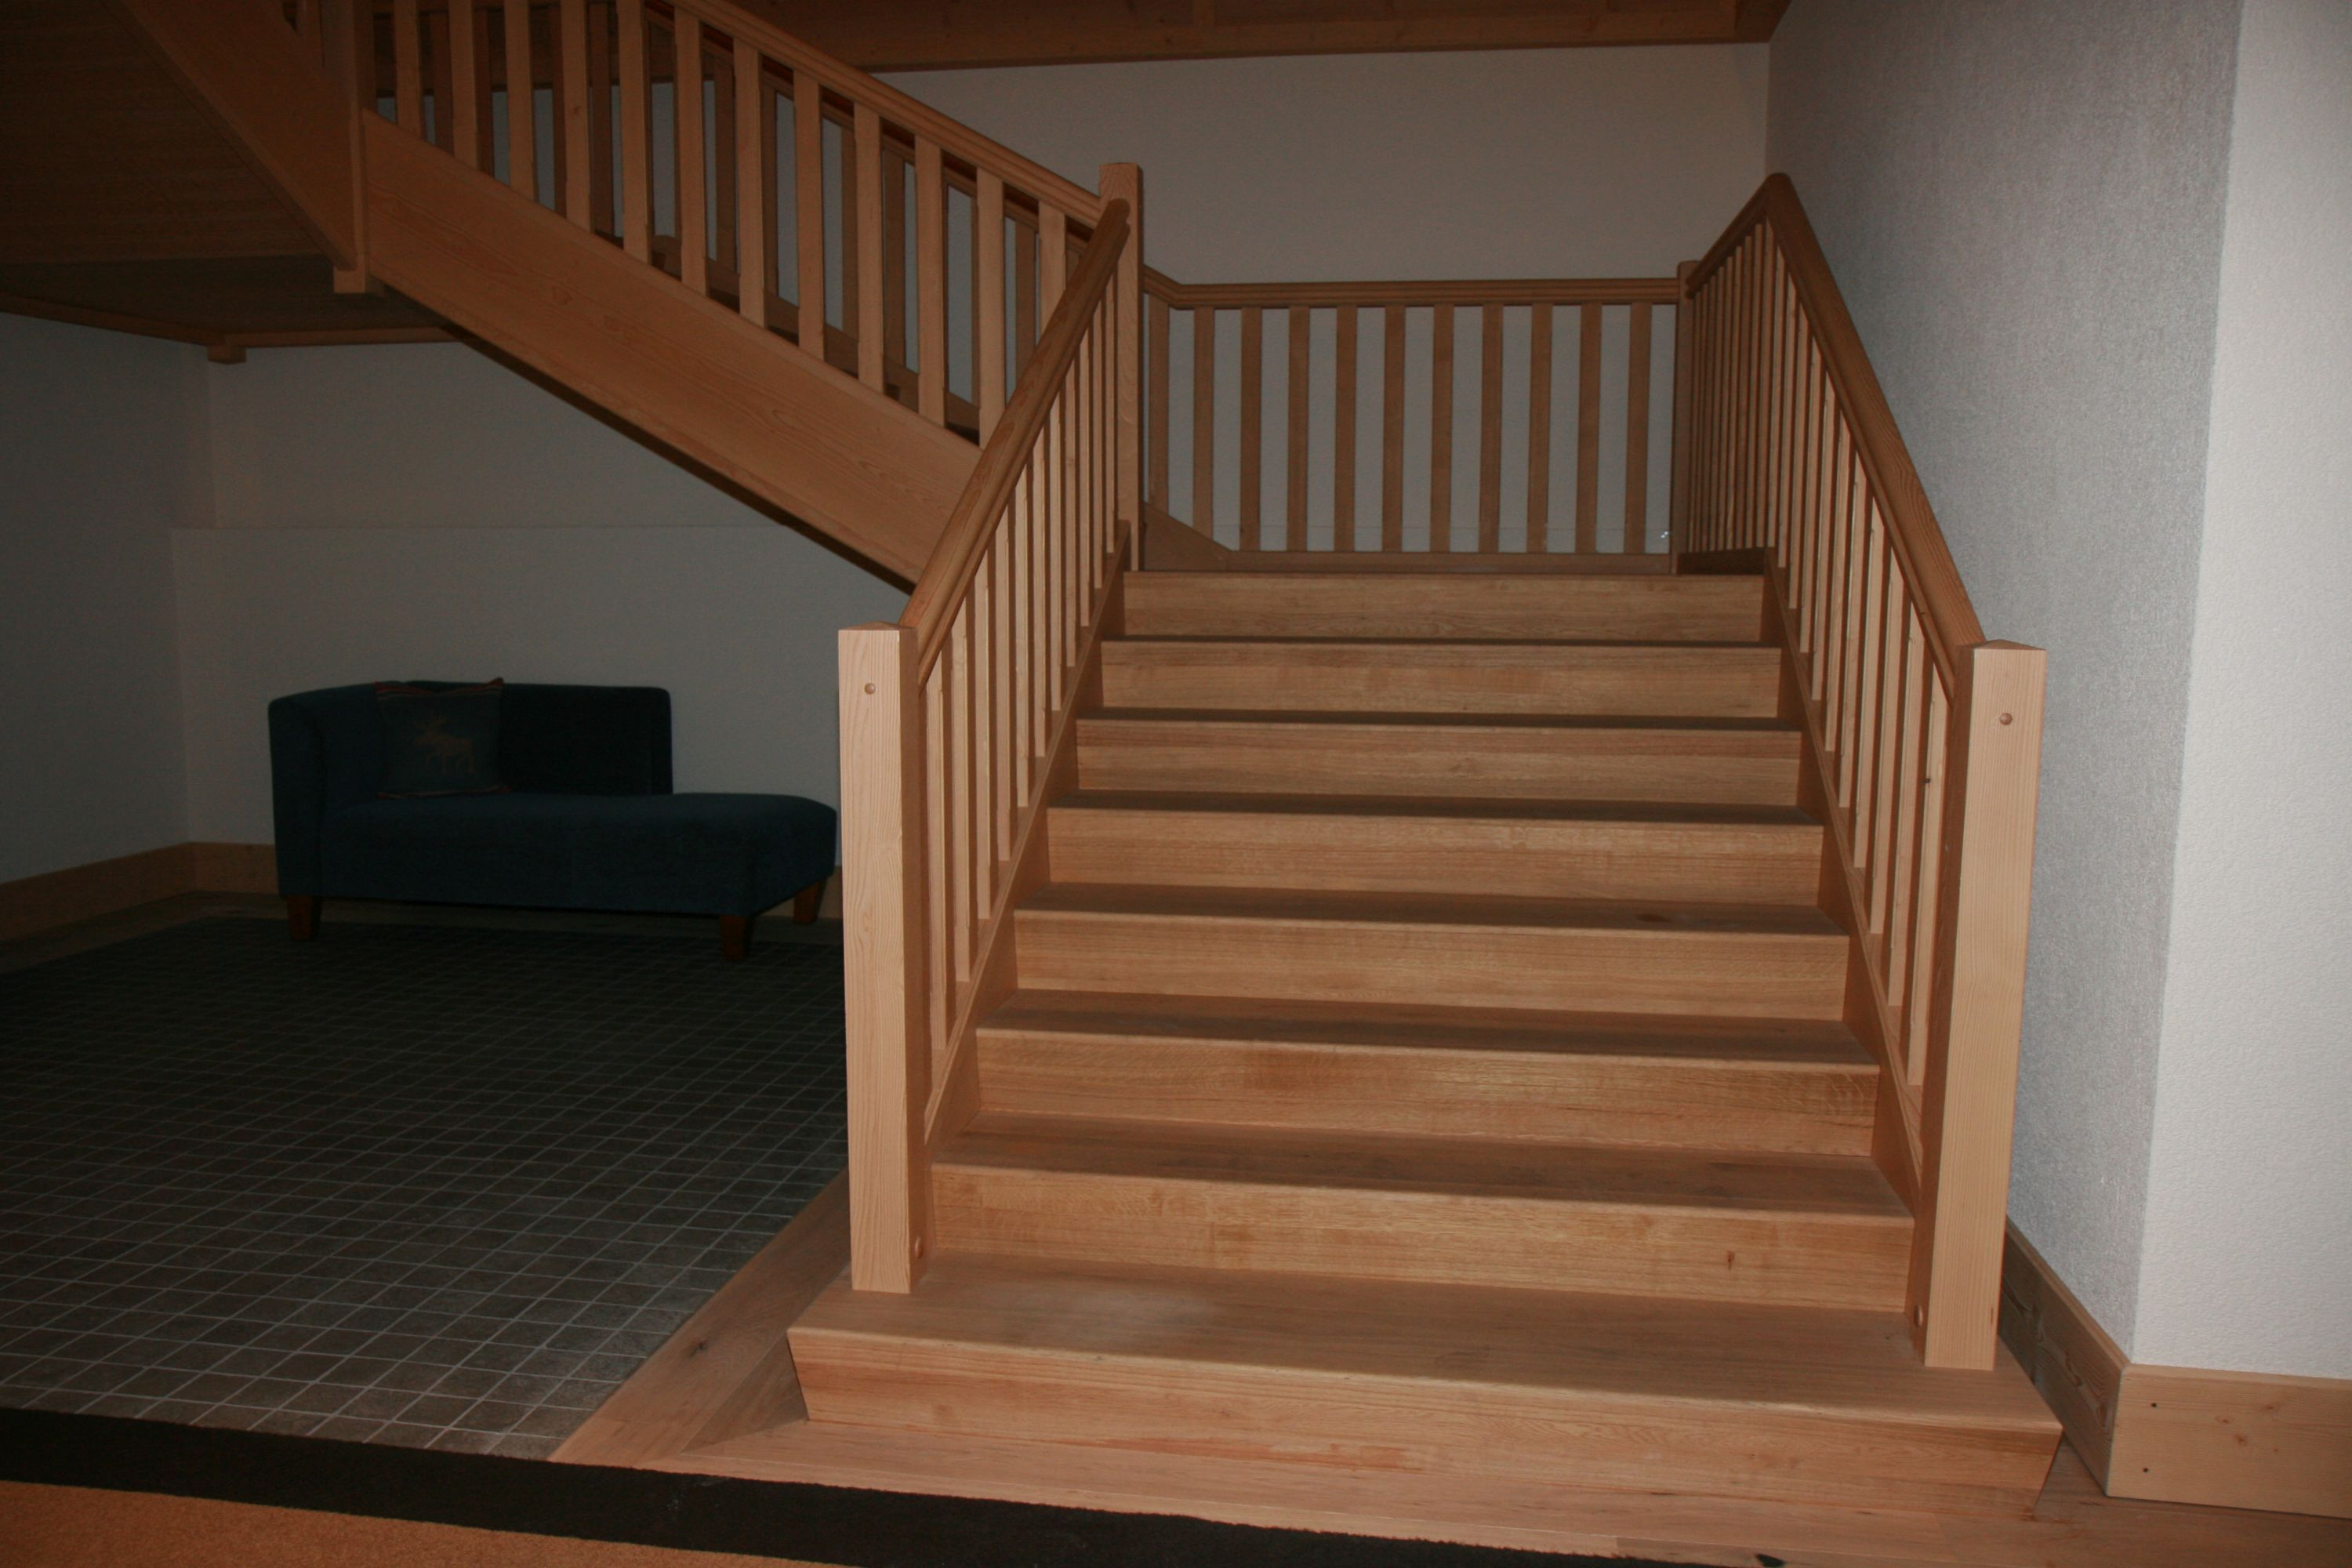 Stair Image 102